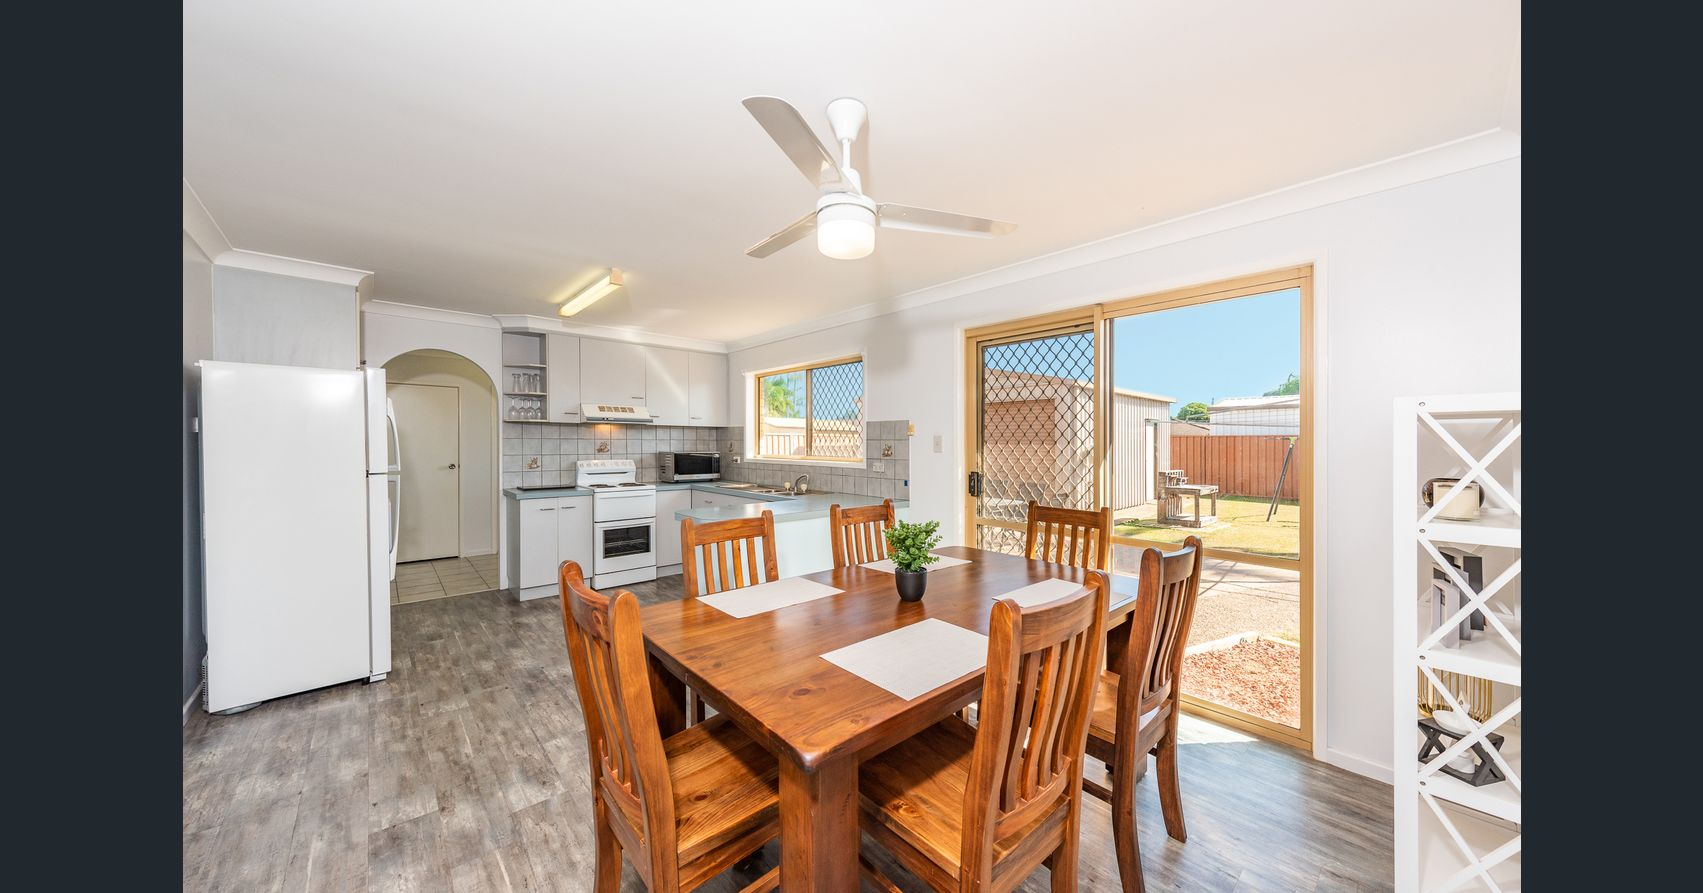 75 McCarthy Road AVENELL HEIGHTS